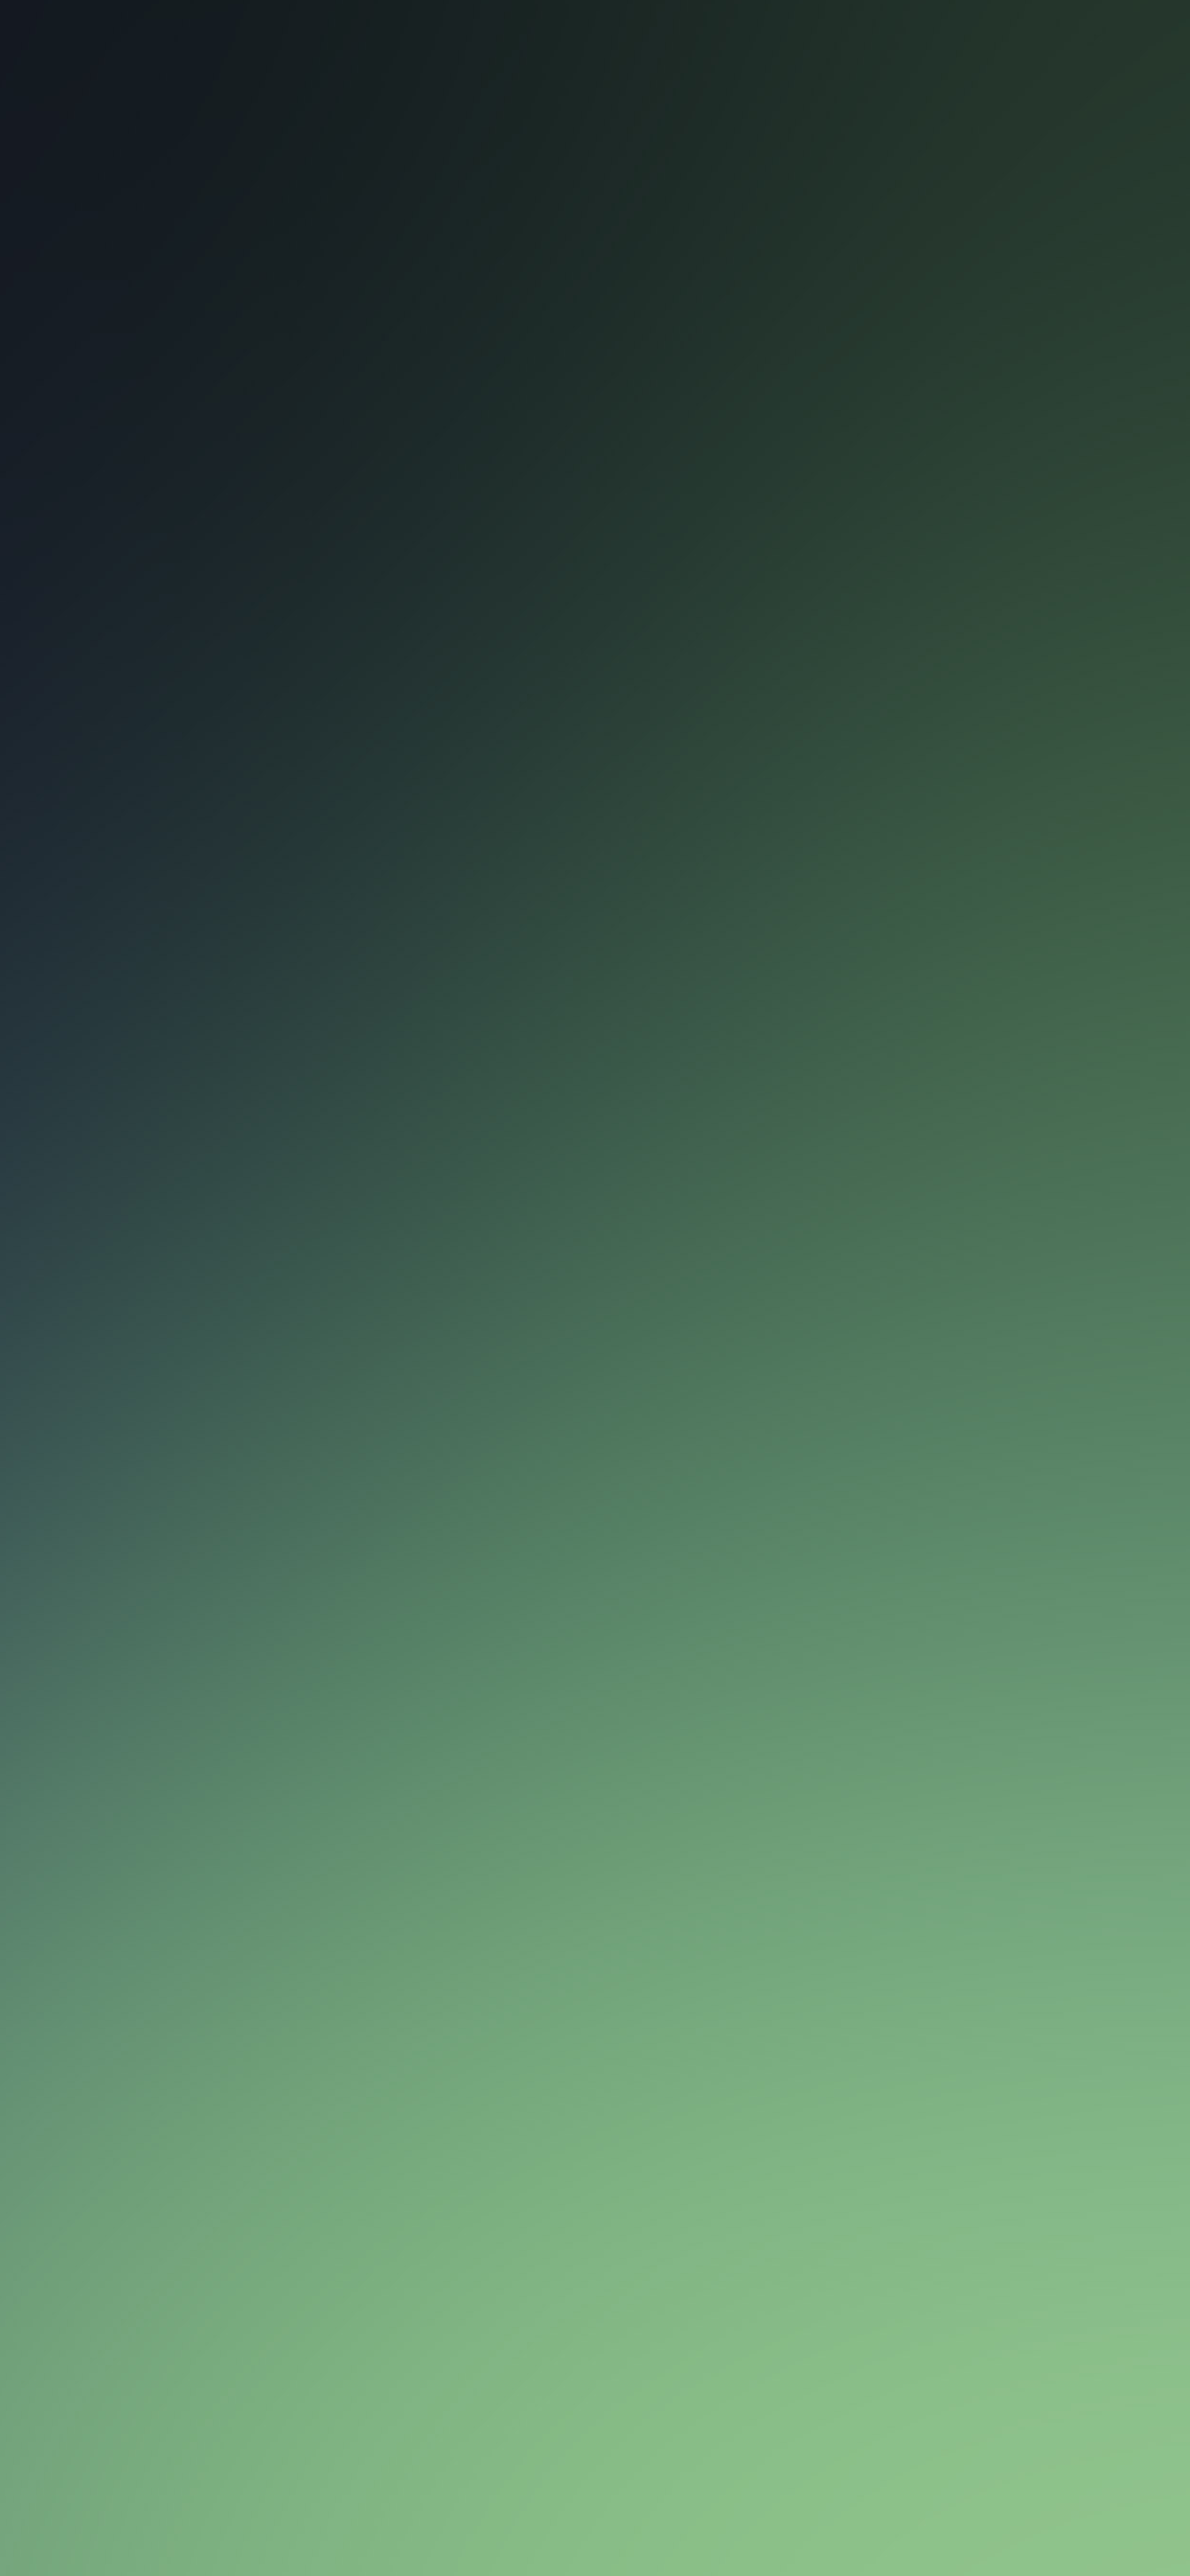 Green Inspired Wallpapers For Ipad And Iphone Xs Max